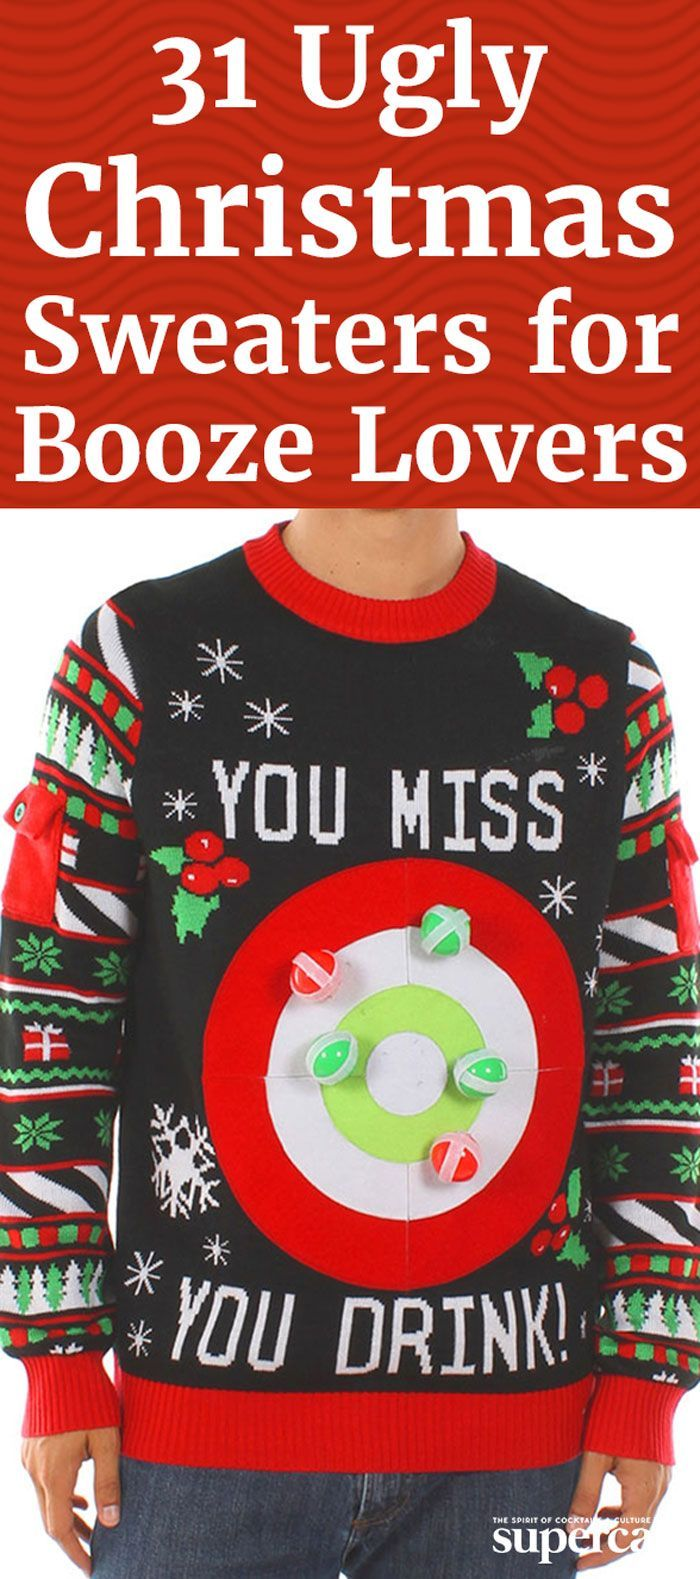 Whether you're a beer, wine, liquor or cocktail lover, there's a ridiculous sweater for you. Here, the best ugly Christmas sweaters to get you in the holiday spirit—emphasis on spirit.